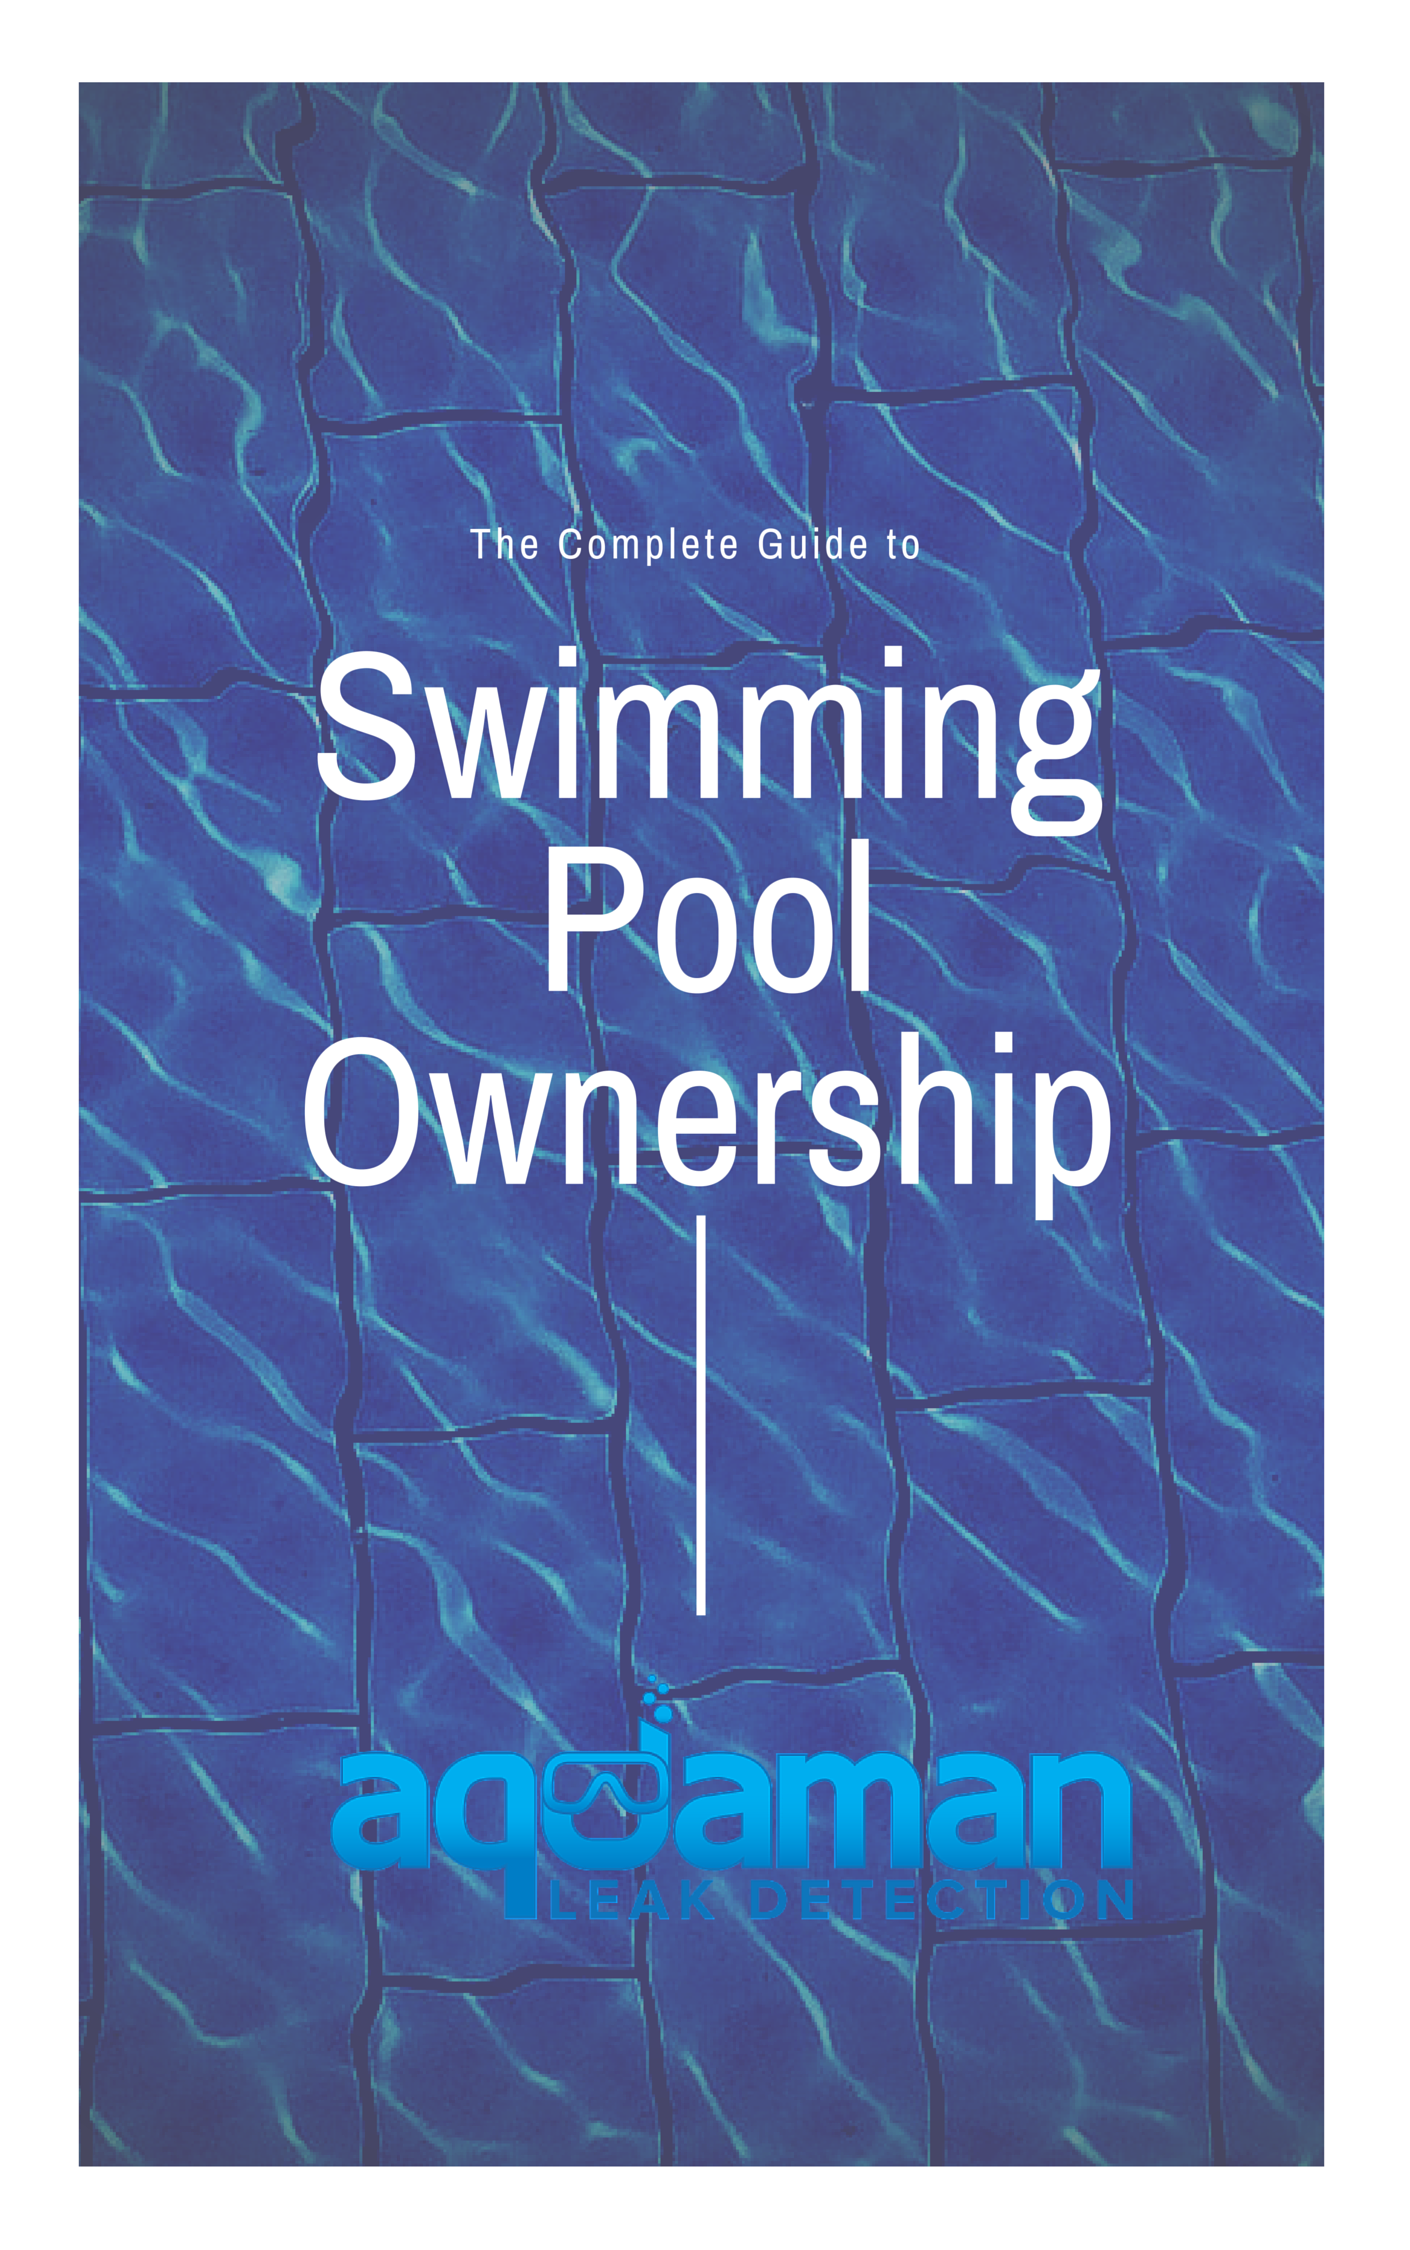 The Complete Guide to Swimming Pool Ownership